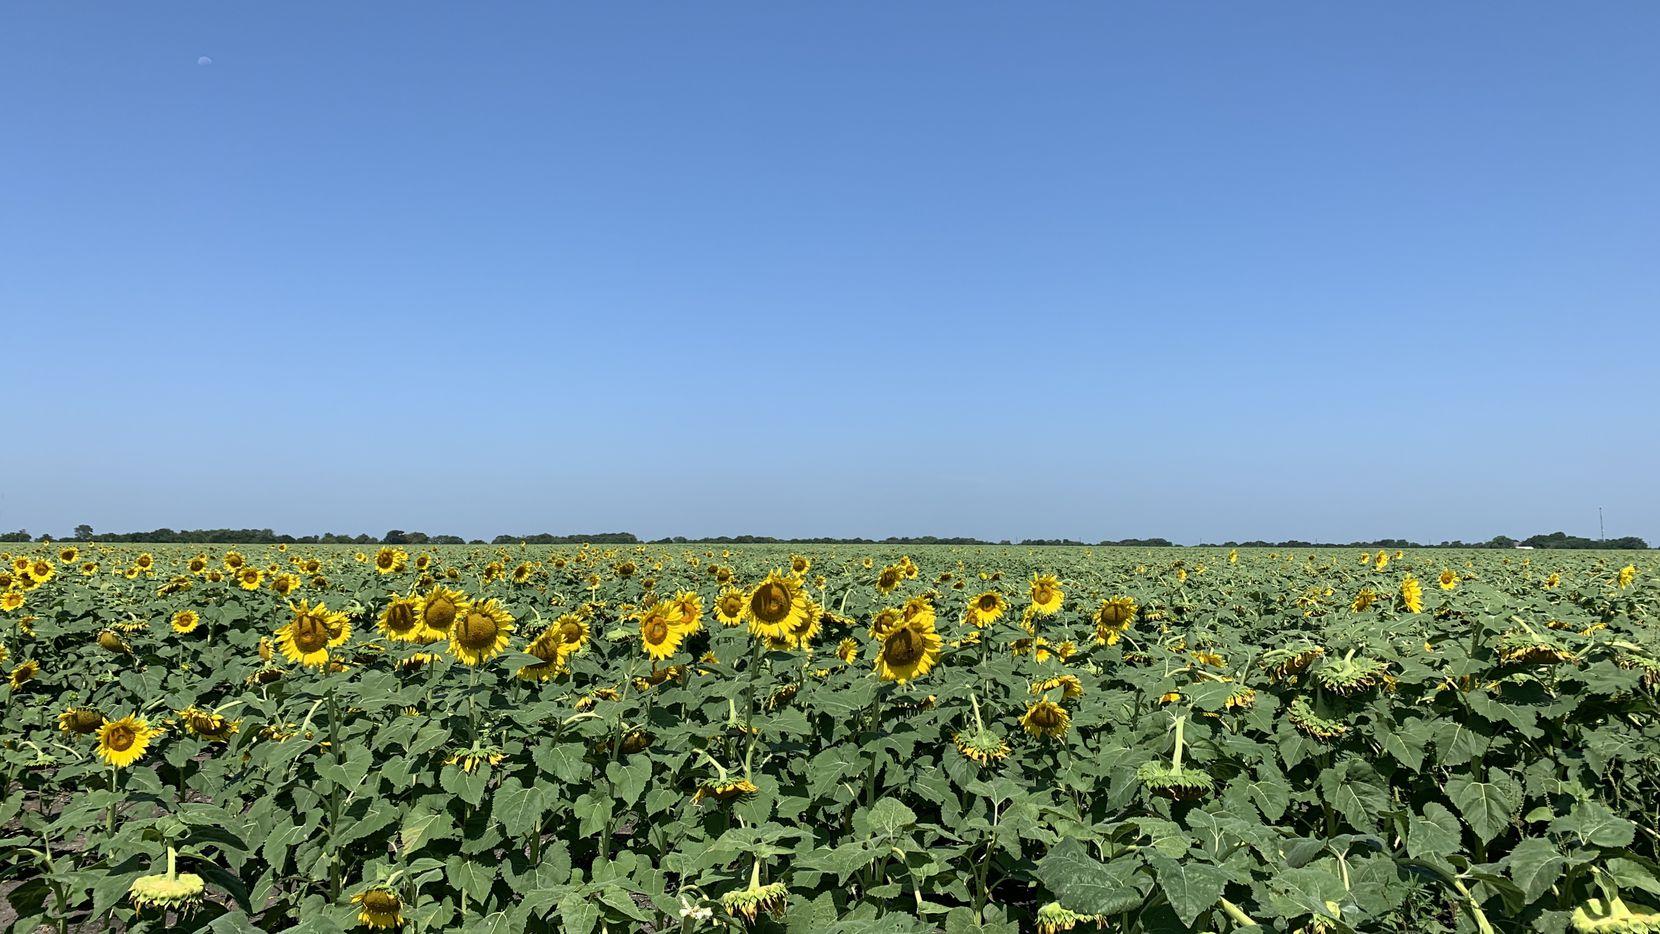 Fields of sunflowers stretch toward the sky in Whitewright, about an hour's drive from Frisco.